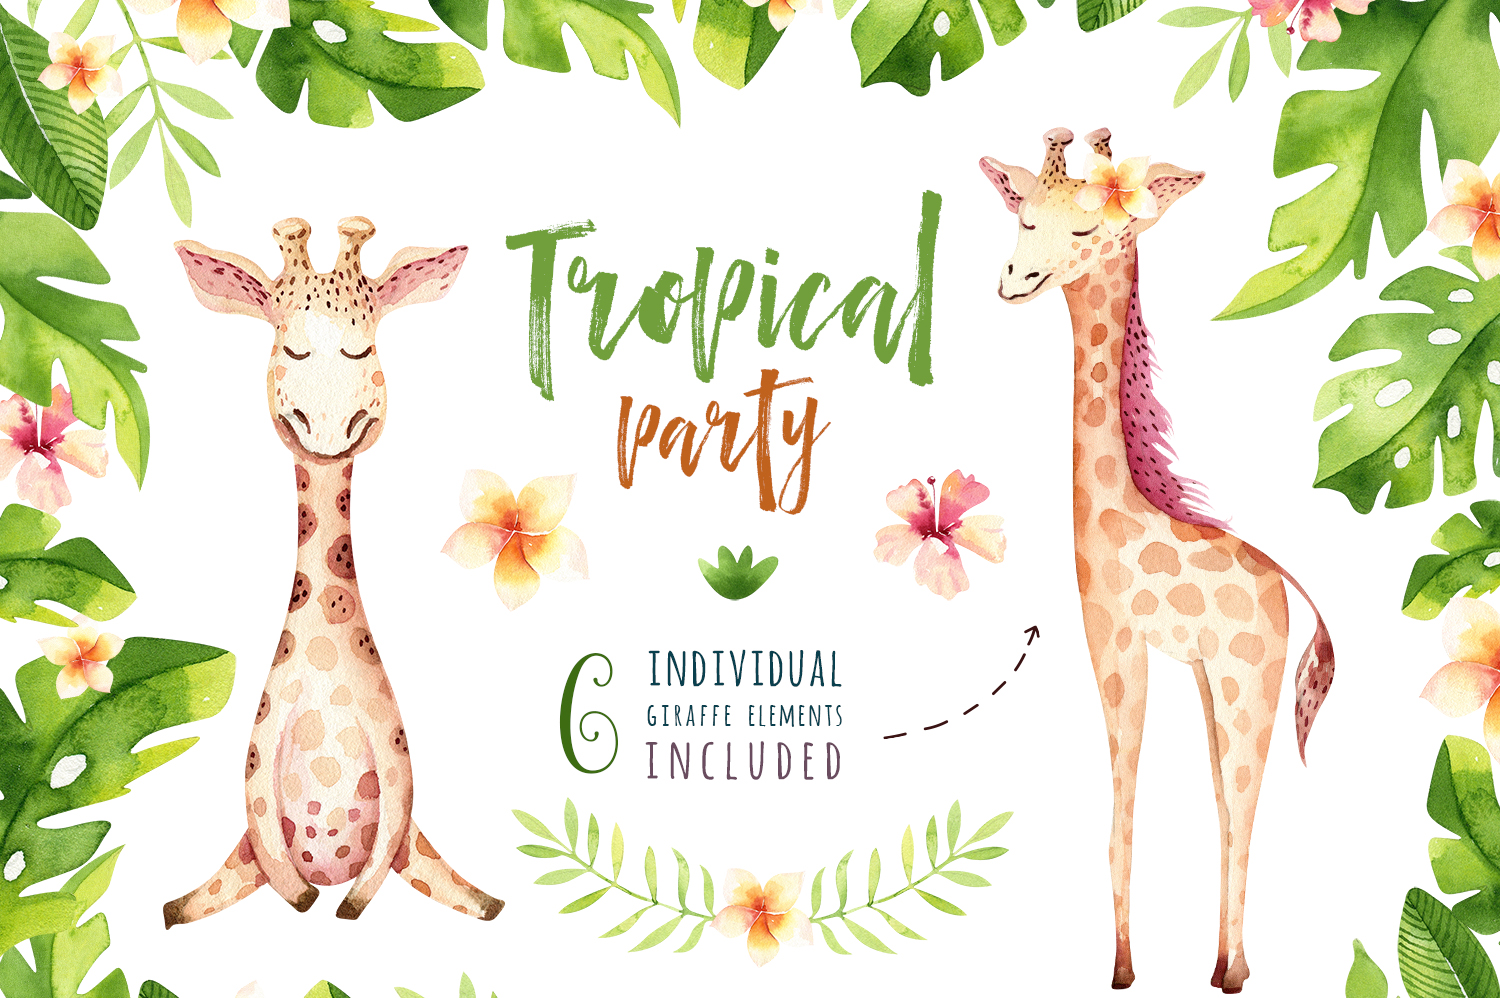 Giraffe collection. Tropical party example image 4